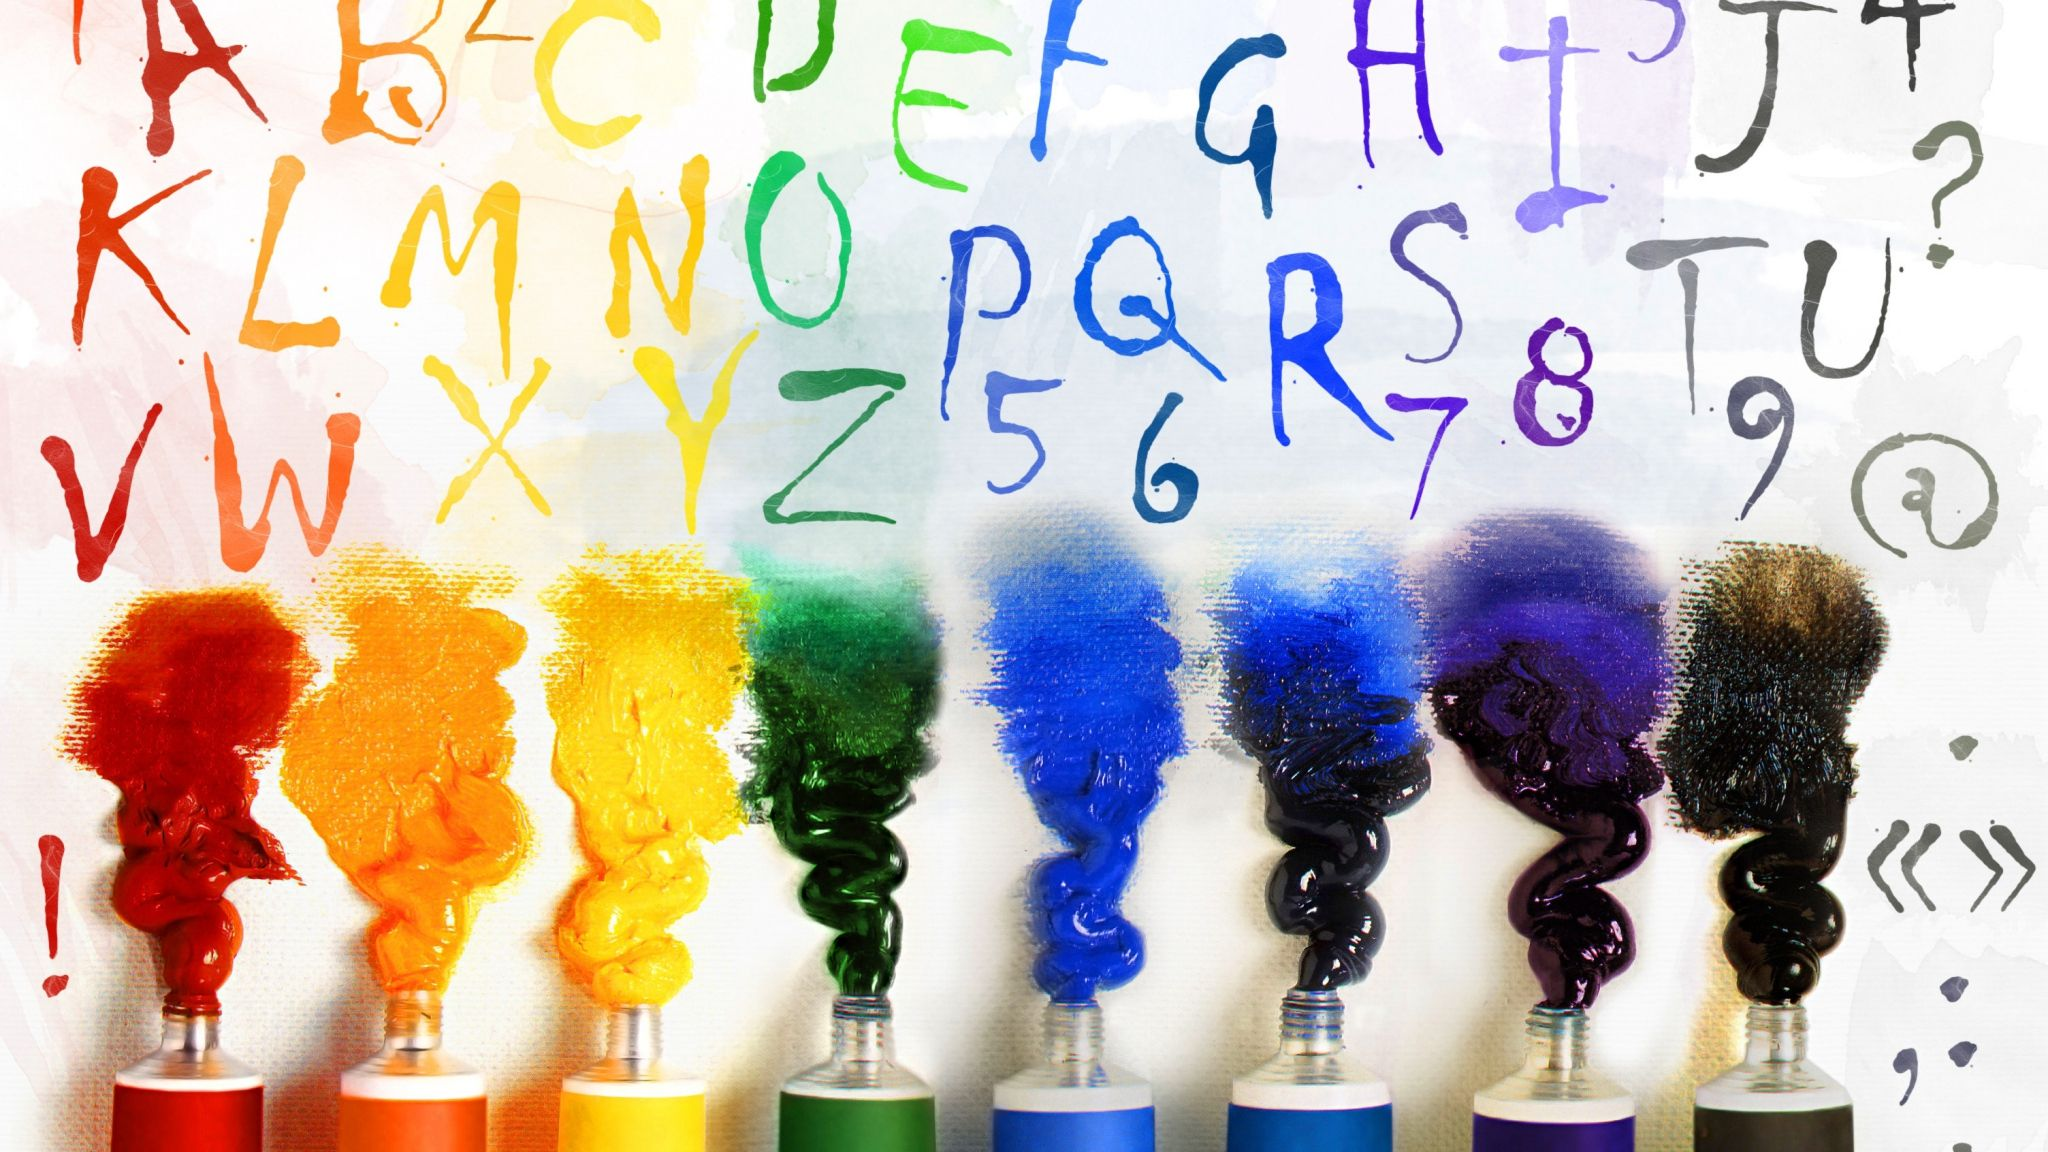 Download Wallpaper 2048x1152 Tubes, Paint, Letter, English | Best Games Wallpapers | Painting ...